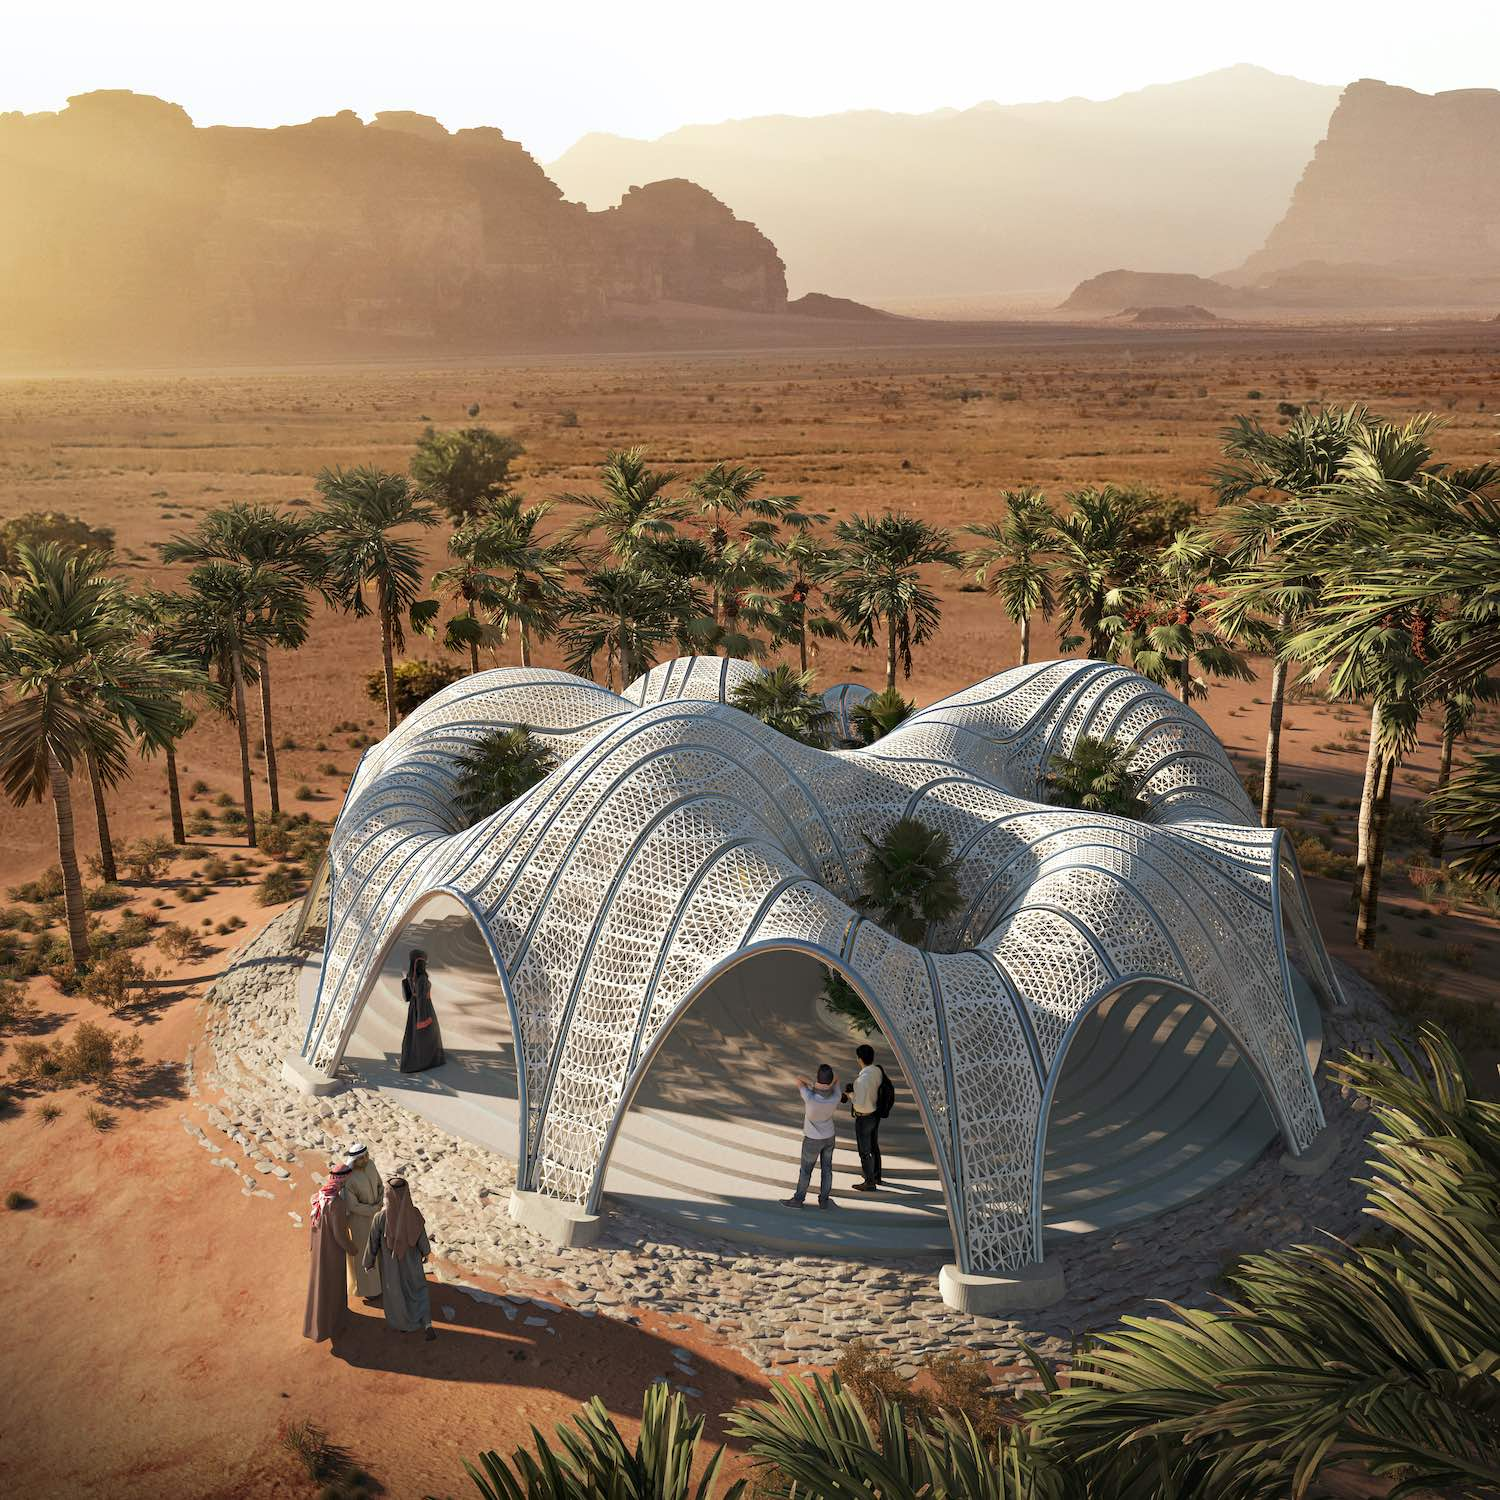 a 3d printed desert pavilion in Wadi Rum Jordan designed by MEAN